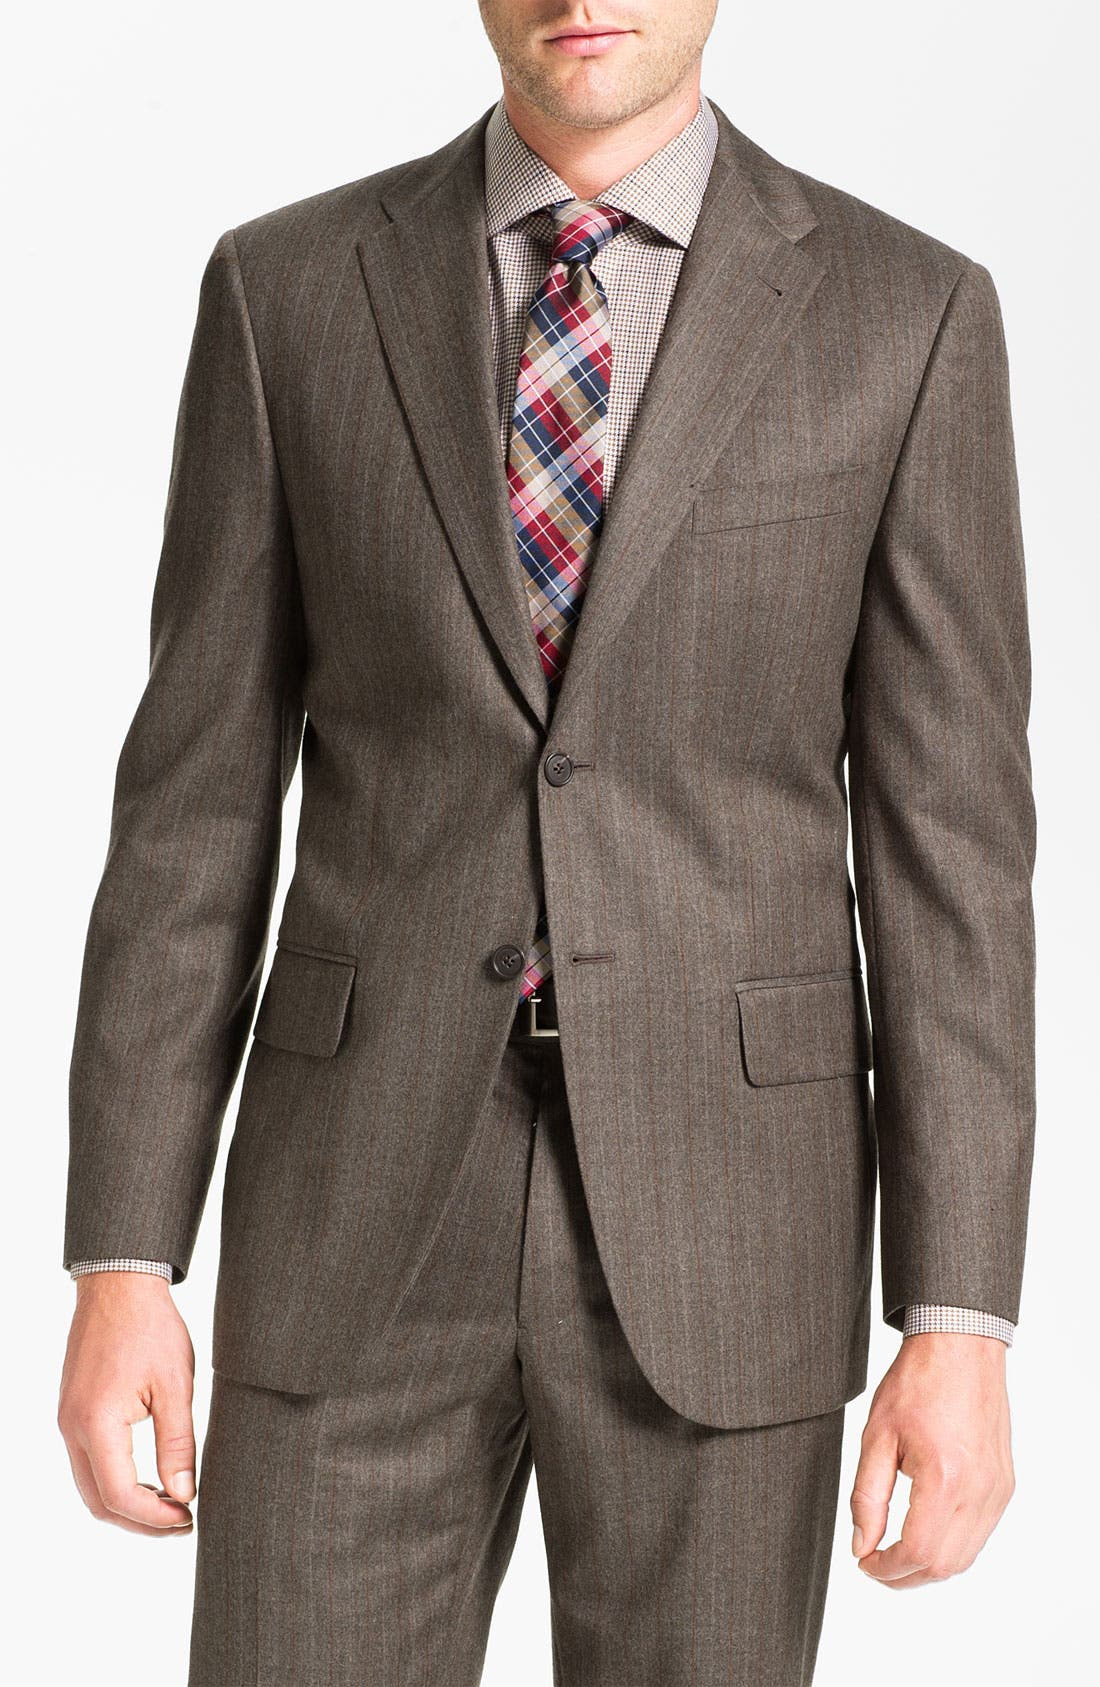 Alternate Image 1 Selected - Joseph Abboud 'Profile' Stripe Wool Suit